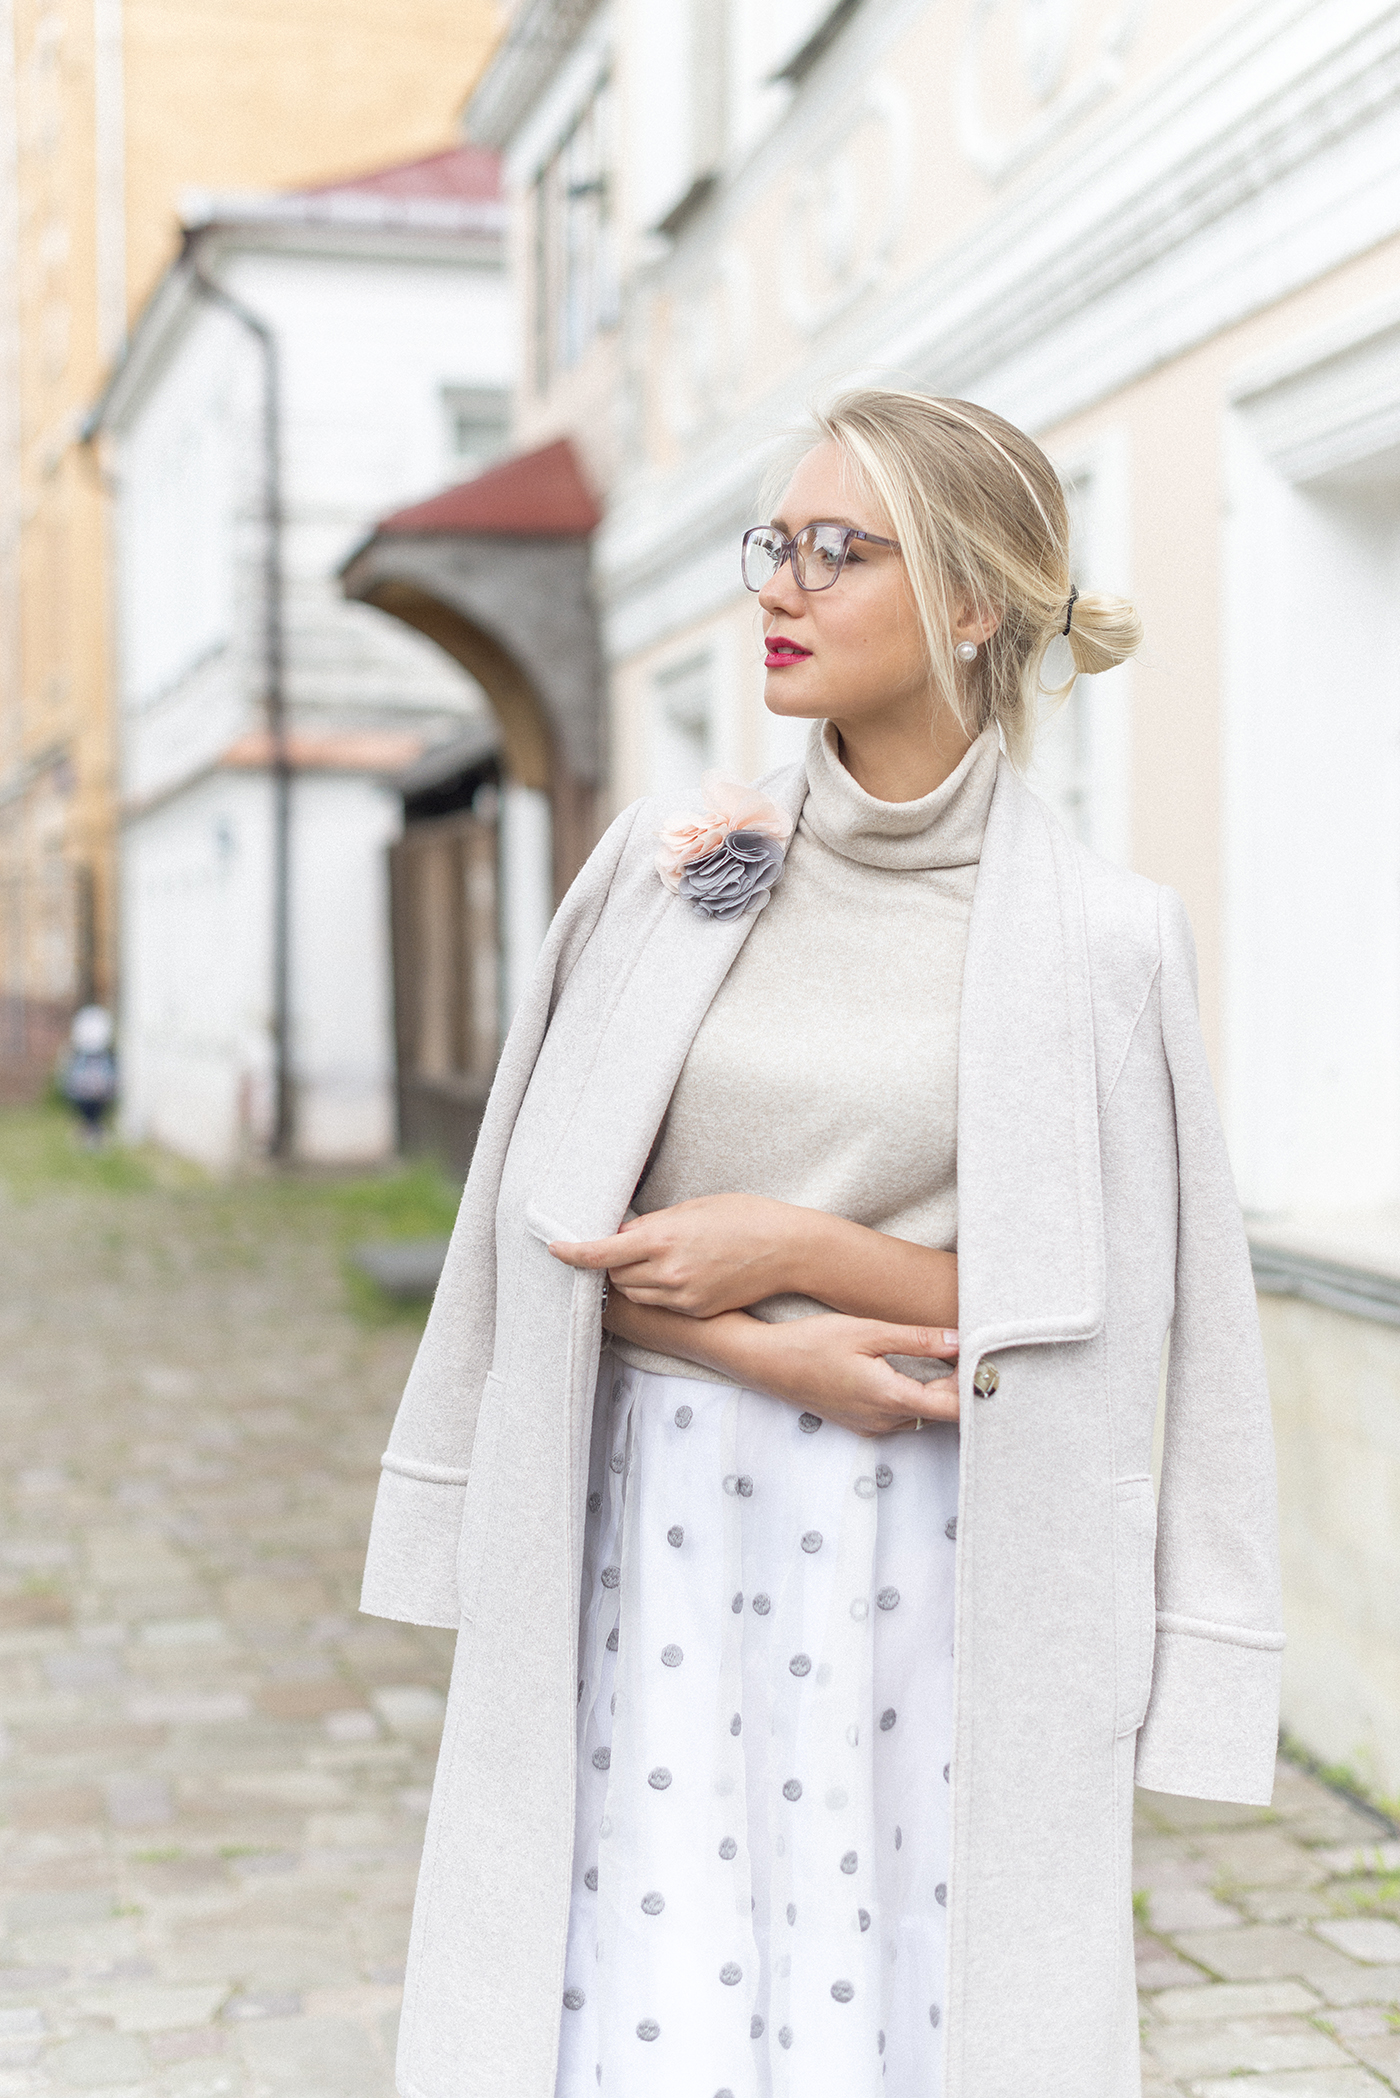 inspiration, streetstyle, autumn outfit, annamidday, top fashion blogger, top russian fashion blogger, фэшн блогер, русский блогер, известный блогер, топовый блогер, russian bloger, top russian blogger, streetfashion, russian fashion blogger, blogger, fashion, style, fashionista, модный блогер, российский блогер, ТОП блогер, ootd, lookoftheday, look, популярный блогер, российский модный блогер, russian girl, цветовые сочетания, streetstyle, красивая девушка, FW2017-2018, Marc Cain new collection, Анна миддэй, анна мидэй, Marc Cain, MBFWB, MBFW Berlin 2017, Berlin fashion week 2017, Fashion week, marc cain beige coat, marc cain Stylish knitted blouson, marc cain Pants in techno satin, marc cain Blouse-style top in silk organza, marc cain Skirt with silk, marc cain Luxurious coat, alberto guardiani WOMEN SNEAKERS IN BORDEAUX VELVET WITH A FRINGE AND A FLEXIBLE RUBBER SOLE